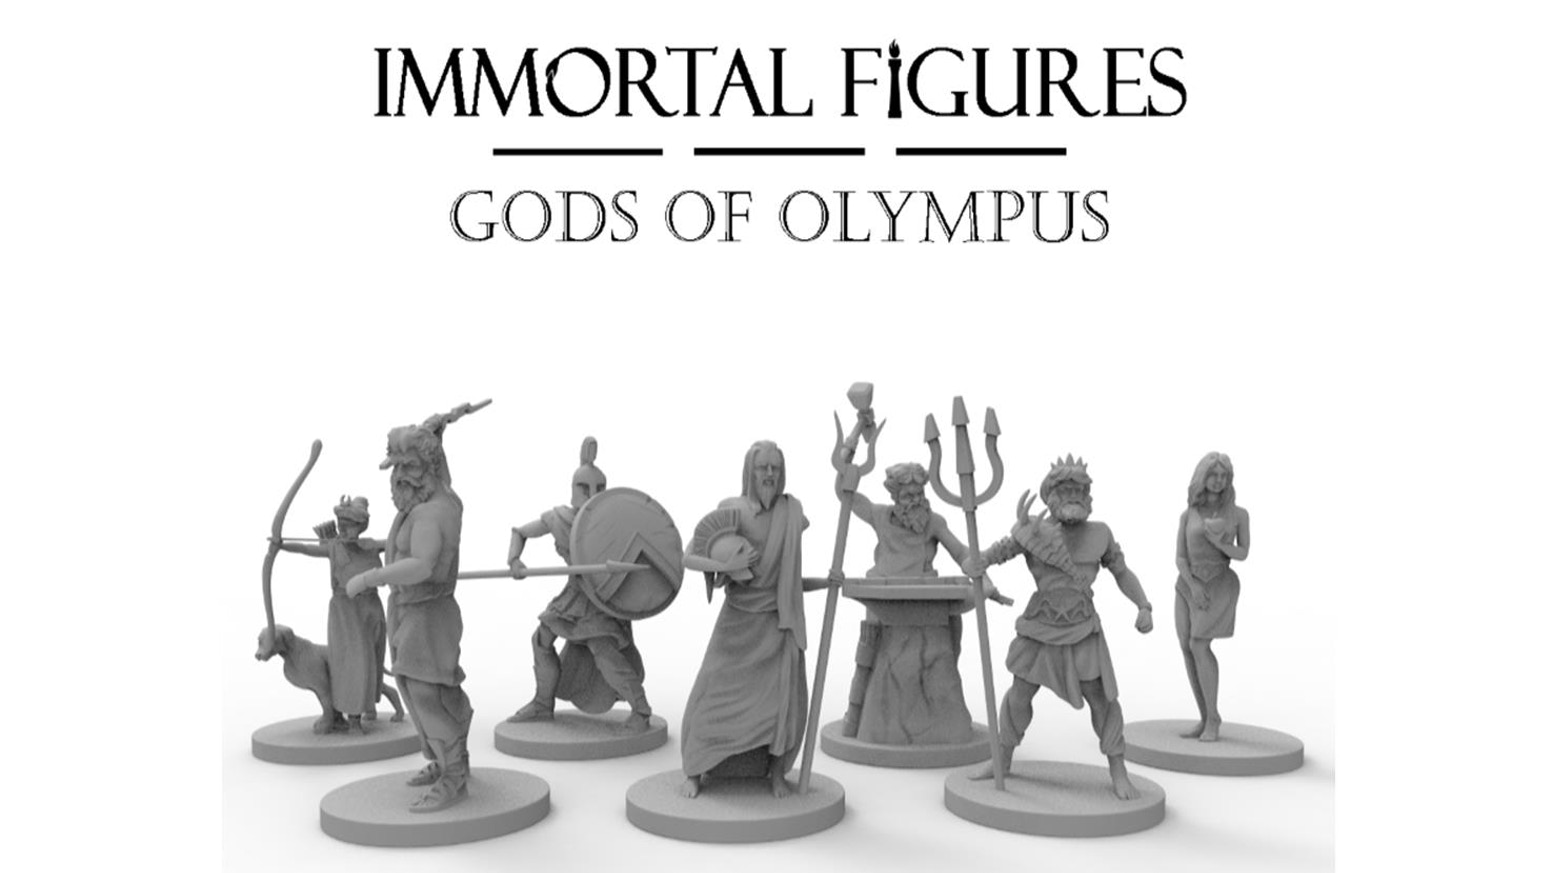 Highquality 28/32 mm scale tabletop gaming miniatures based on the Gods and Goddesses of Greek Mythology.